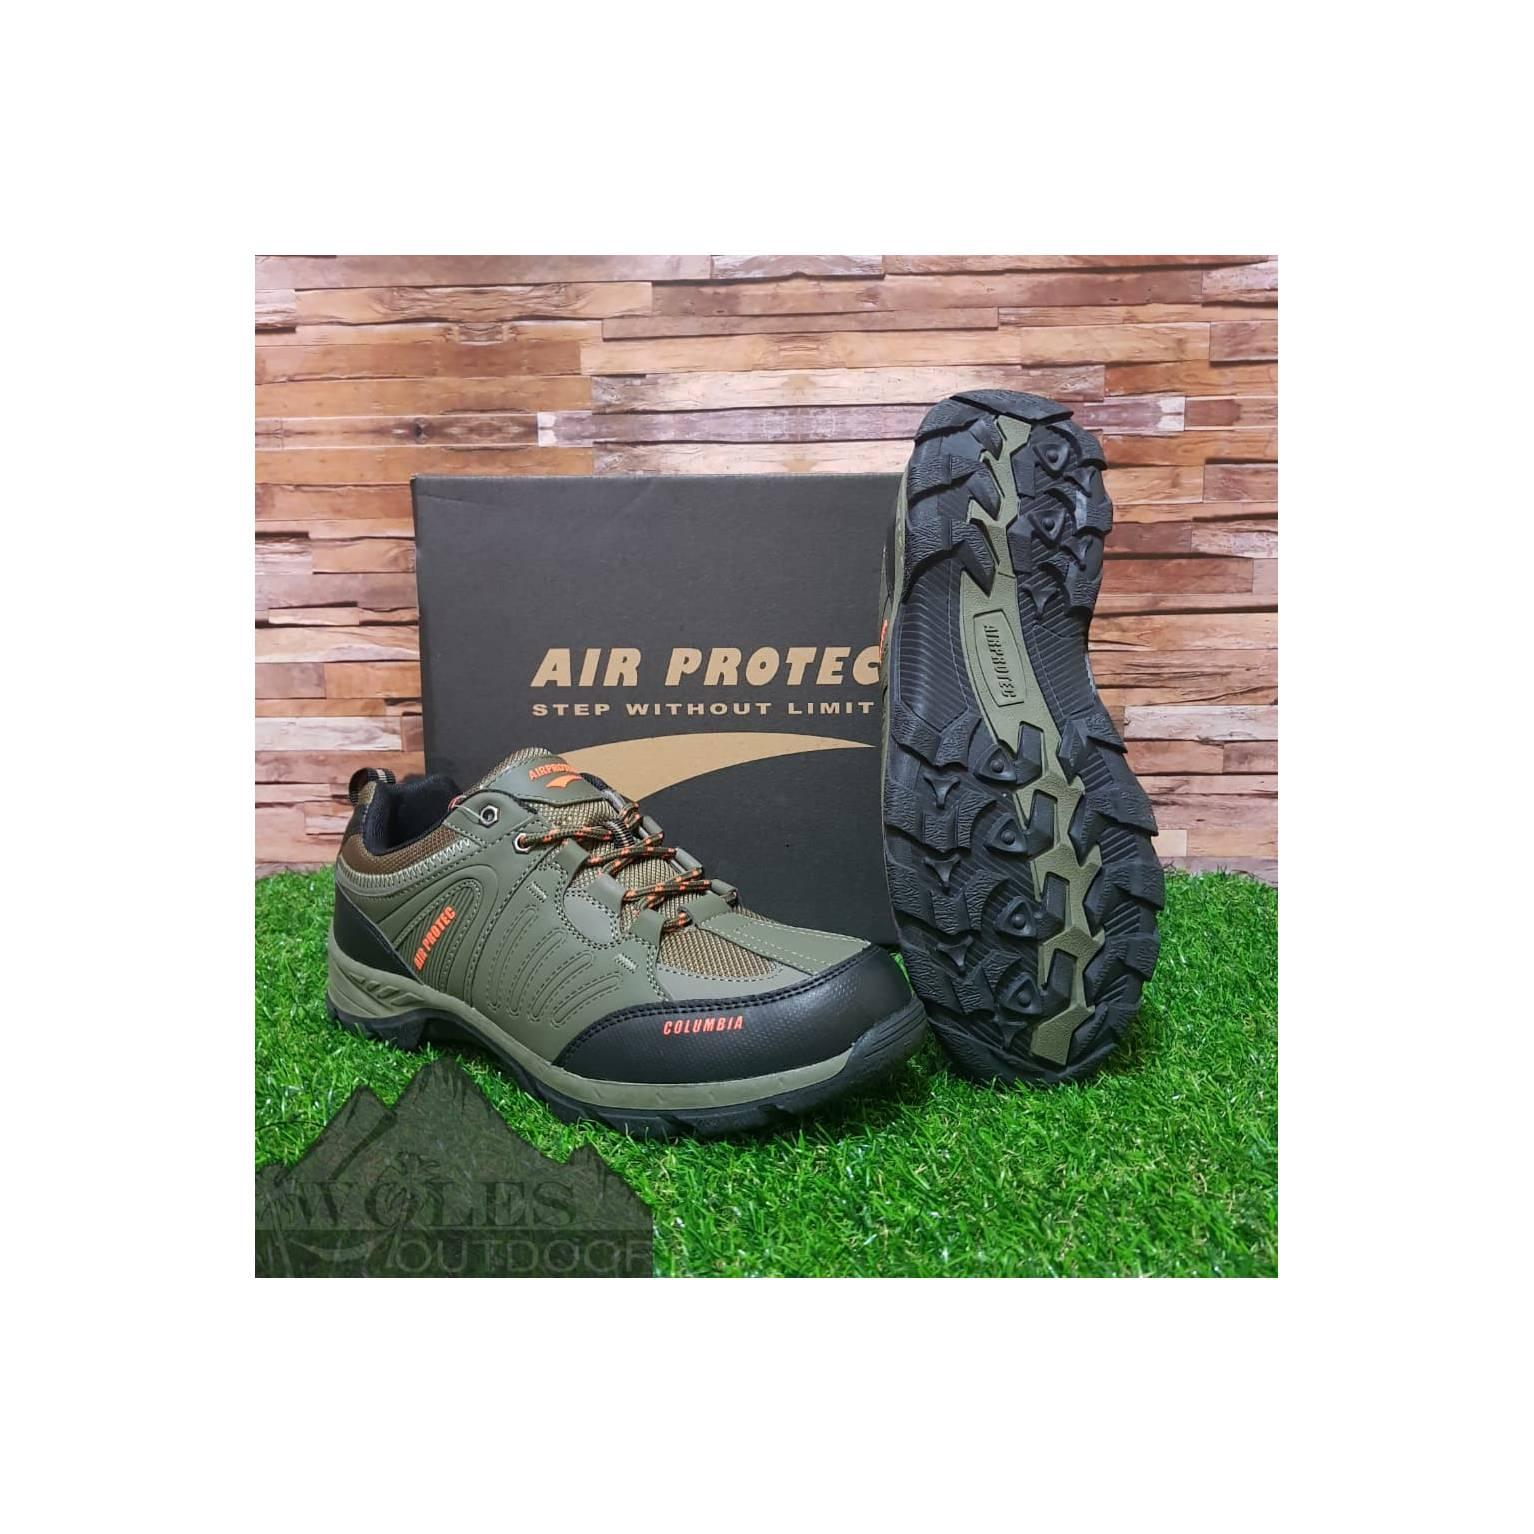 Sepatu Gunung / Sepatu Hiking Air Protec Columbia Coral Waterproof